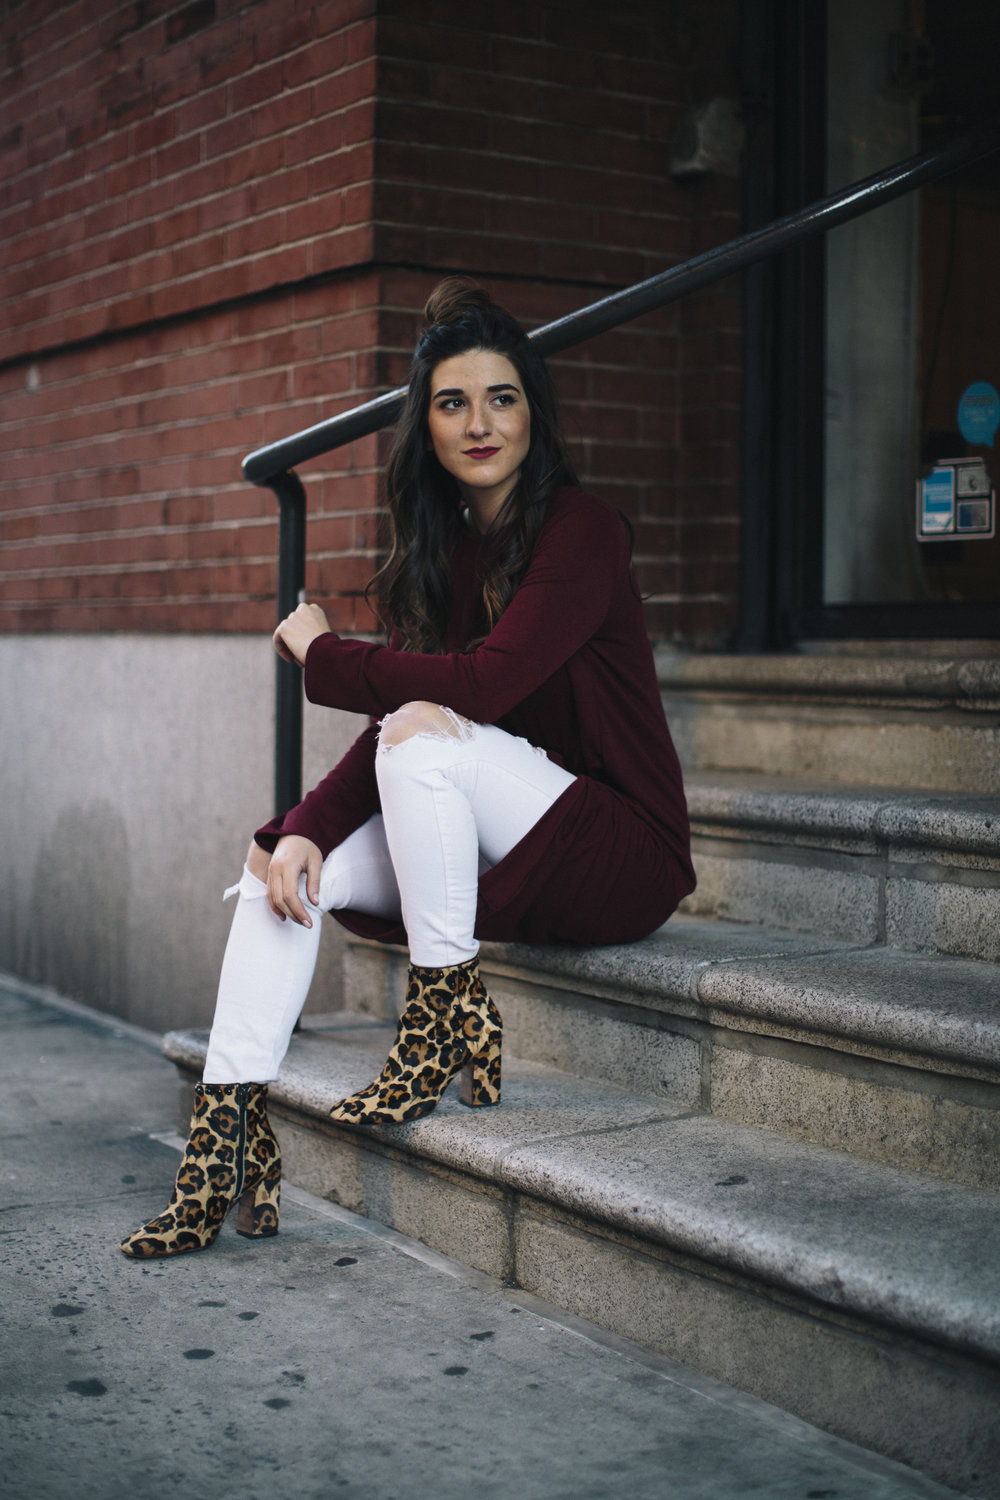 Knotted Dress + Ripped White Jeans 4 Ways To Build Connections Louboutins & Love Fashion Blog Esther Santer NYC Street Style Blogger Outfit OOTD Trendy Red Maroon Burgundy Winter Wear Color Leopard Coach Shoes Booties Pants Women Girl Topknot Bun Hair.jpg